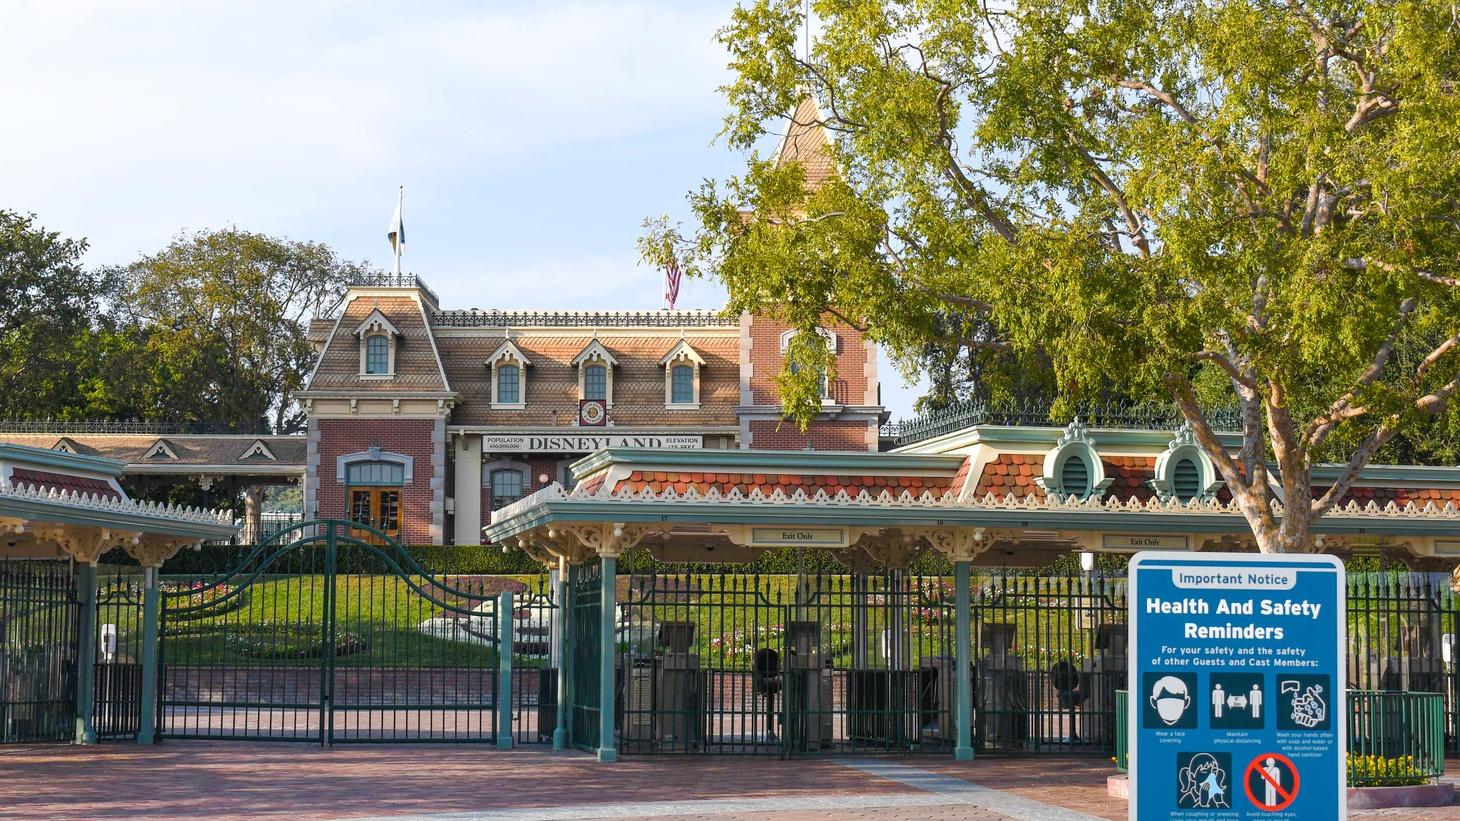 Disney's theme park in Anaheim, October 5, 2020. Disney and California are in a dispute about whether Disney's parks in the state can reopen during the coronavirus pandemic.